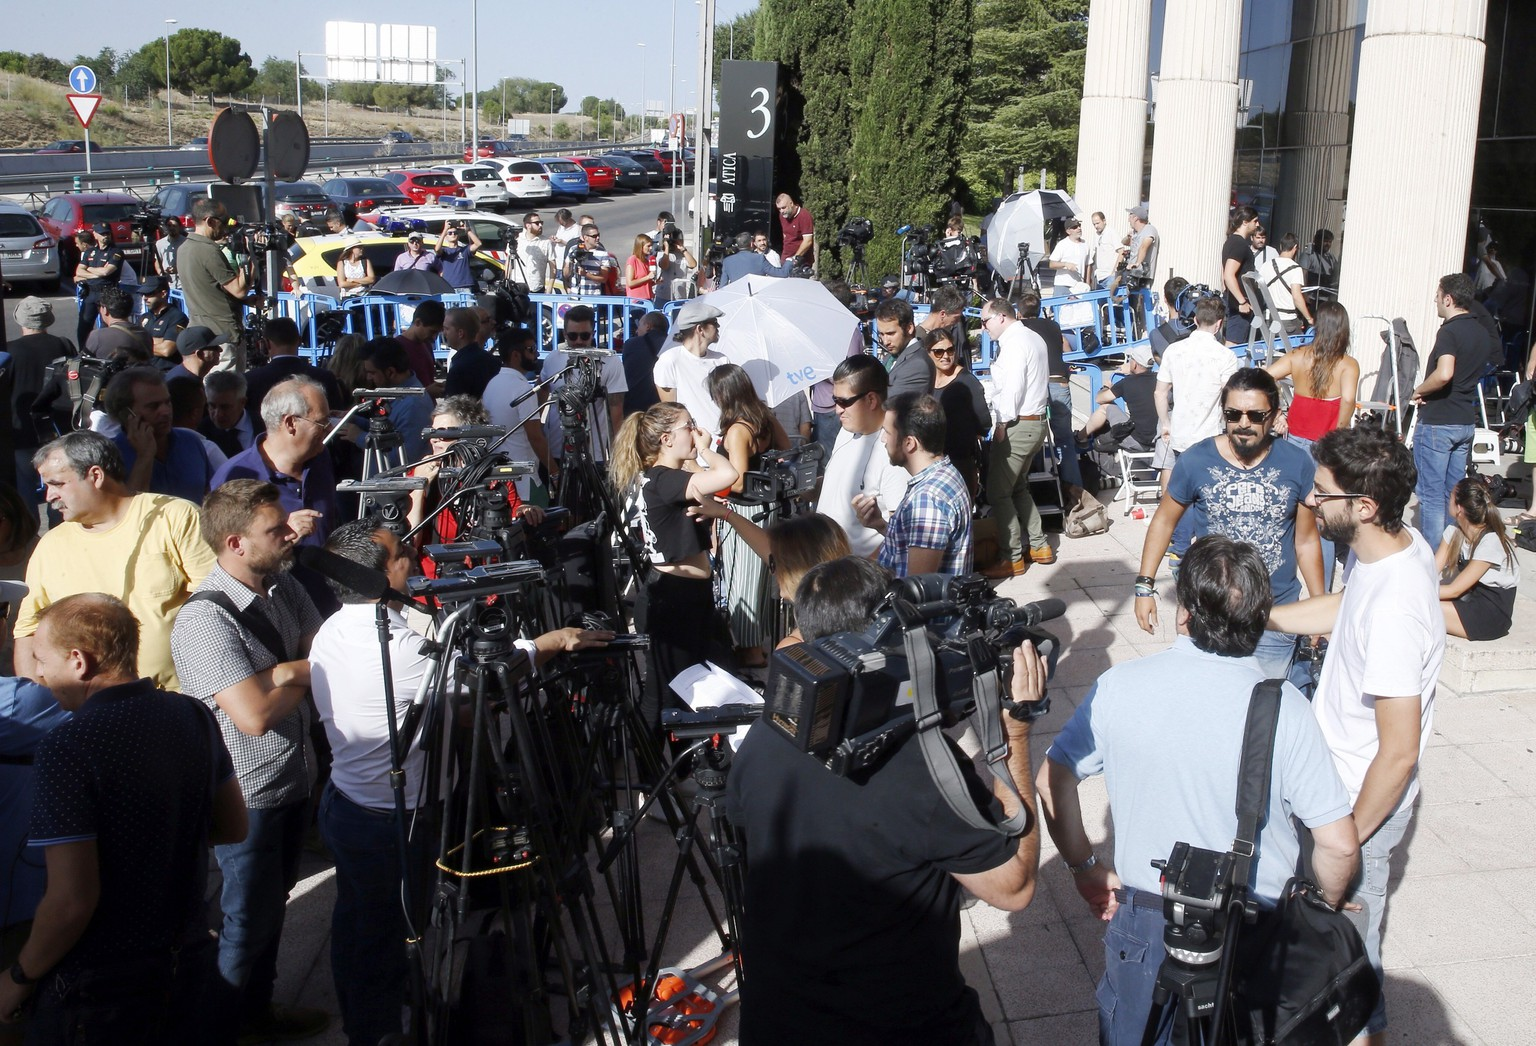 epa06118469 Several journalists wait outside the Examining Magistrate's Court No. 1 for the arrival of Portuguese soccer player Cristiano Ronaldo, in the town of Pozuelo de Alarcon, outside Madrid, Spain, 31 July 2017. Ronaldo is to testify before the judge after he was accused by Spanish Prosecution Office of four offences of tax fraud 14.7 million euro between 2011 and 2014.  EPA/PACO CAMPOS